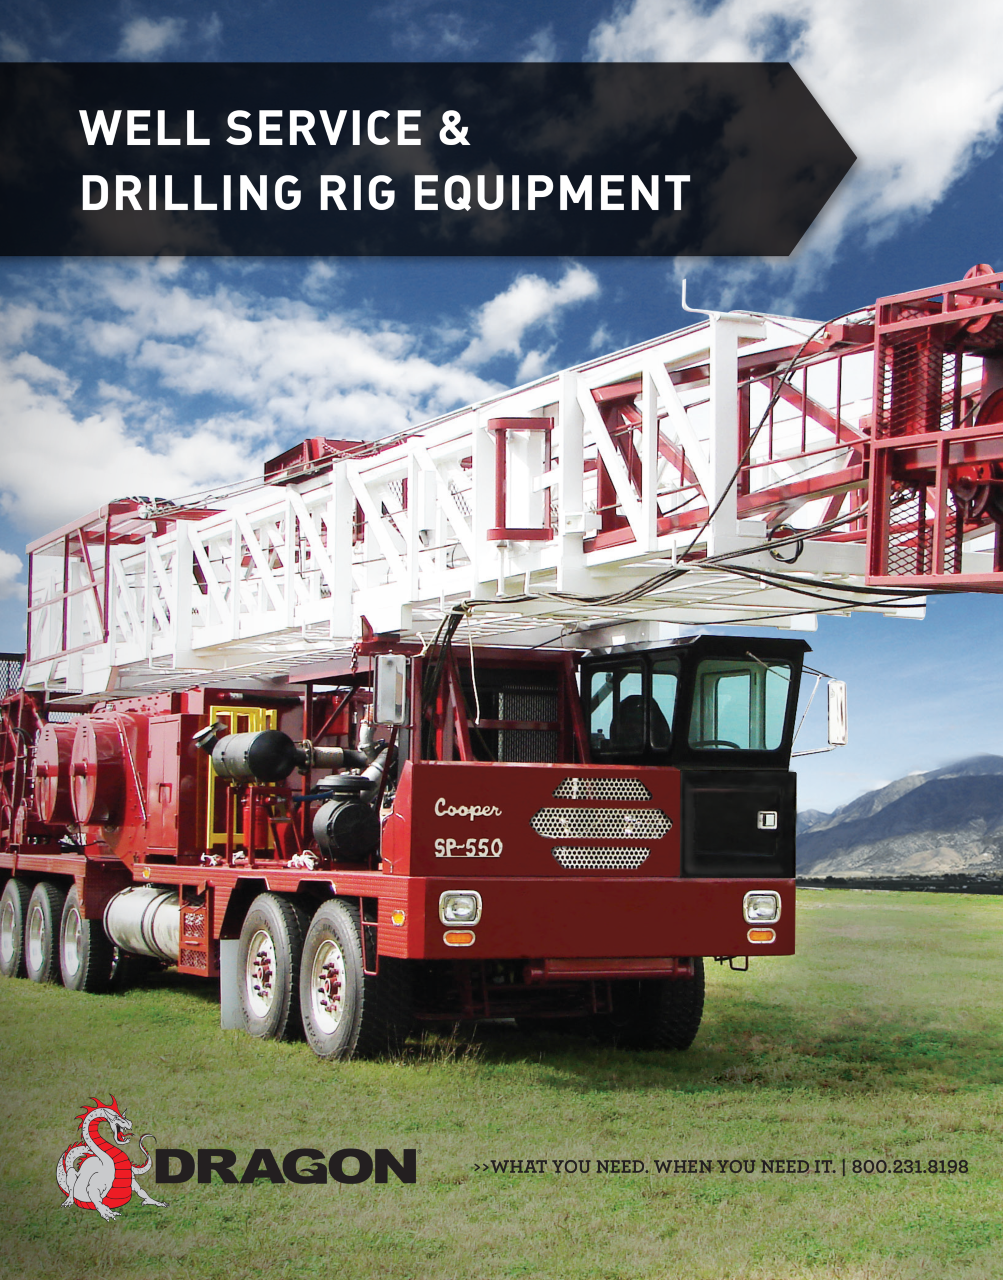 Well Service & Drilling Rig Equipment